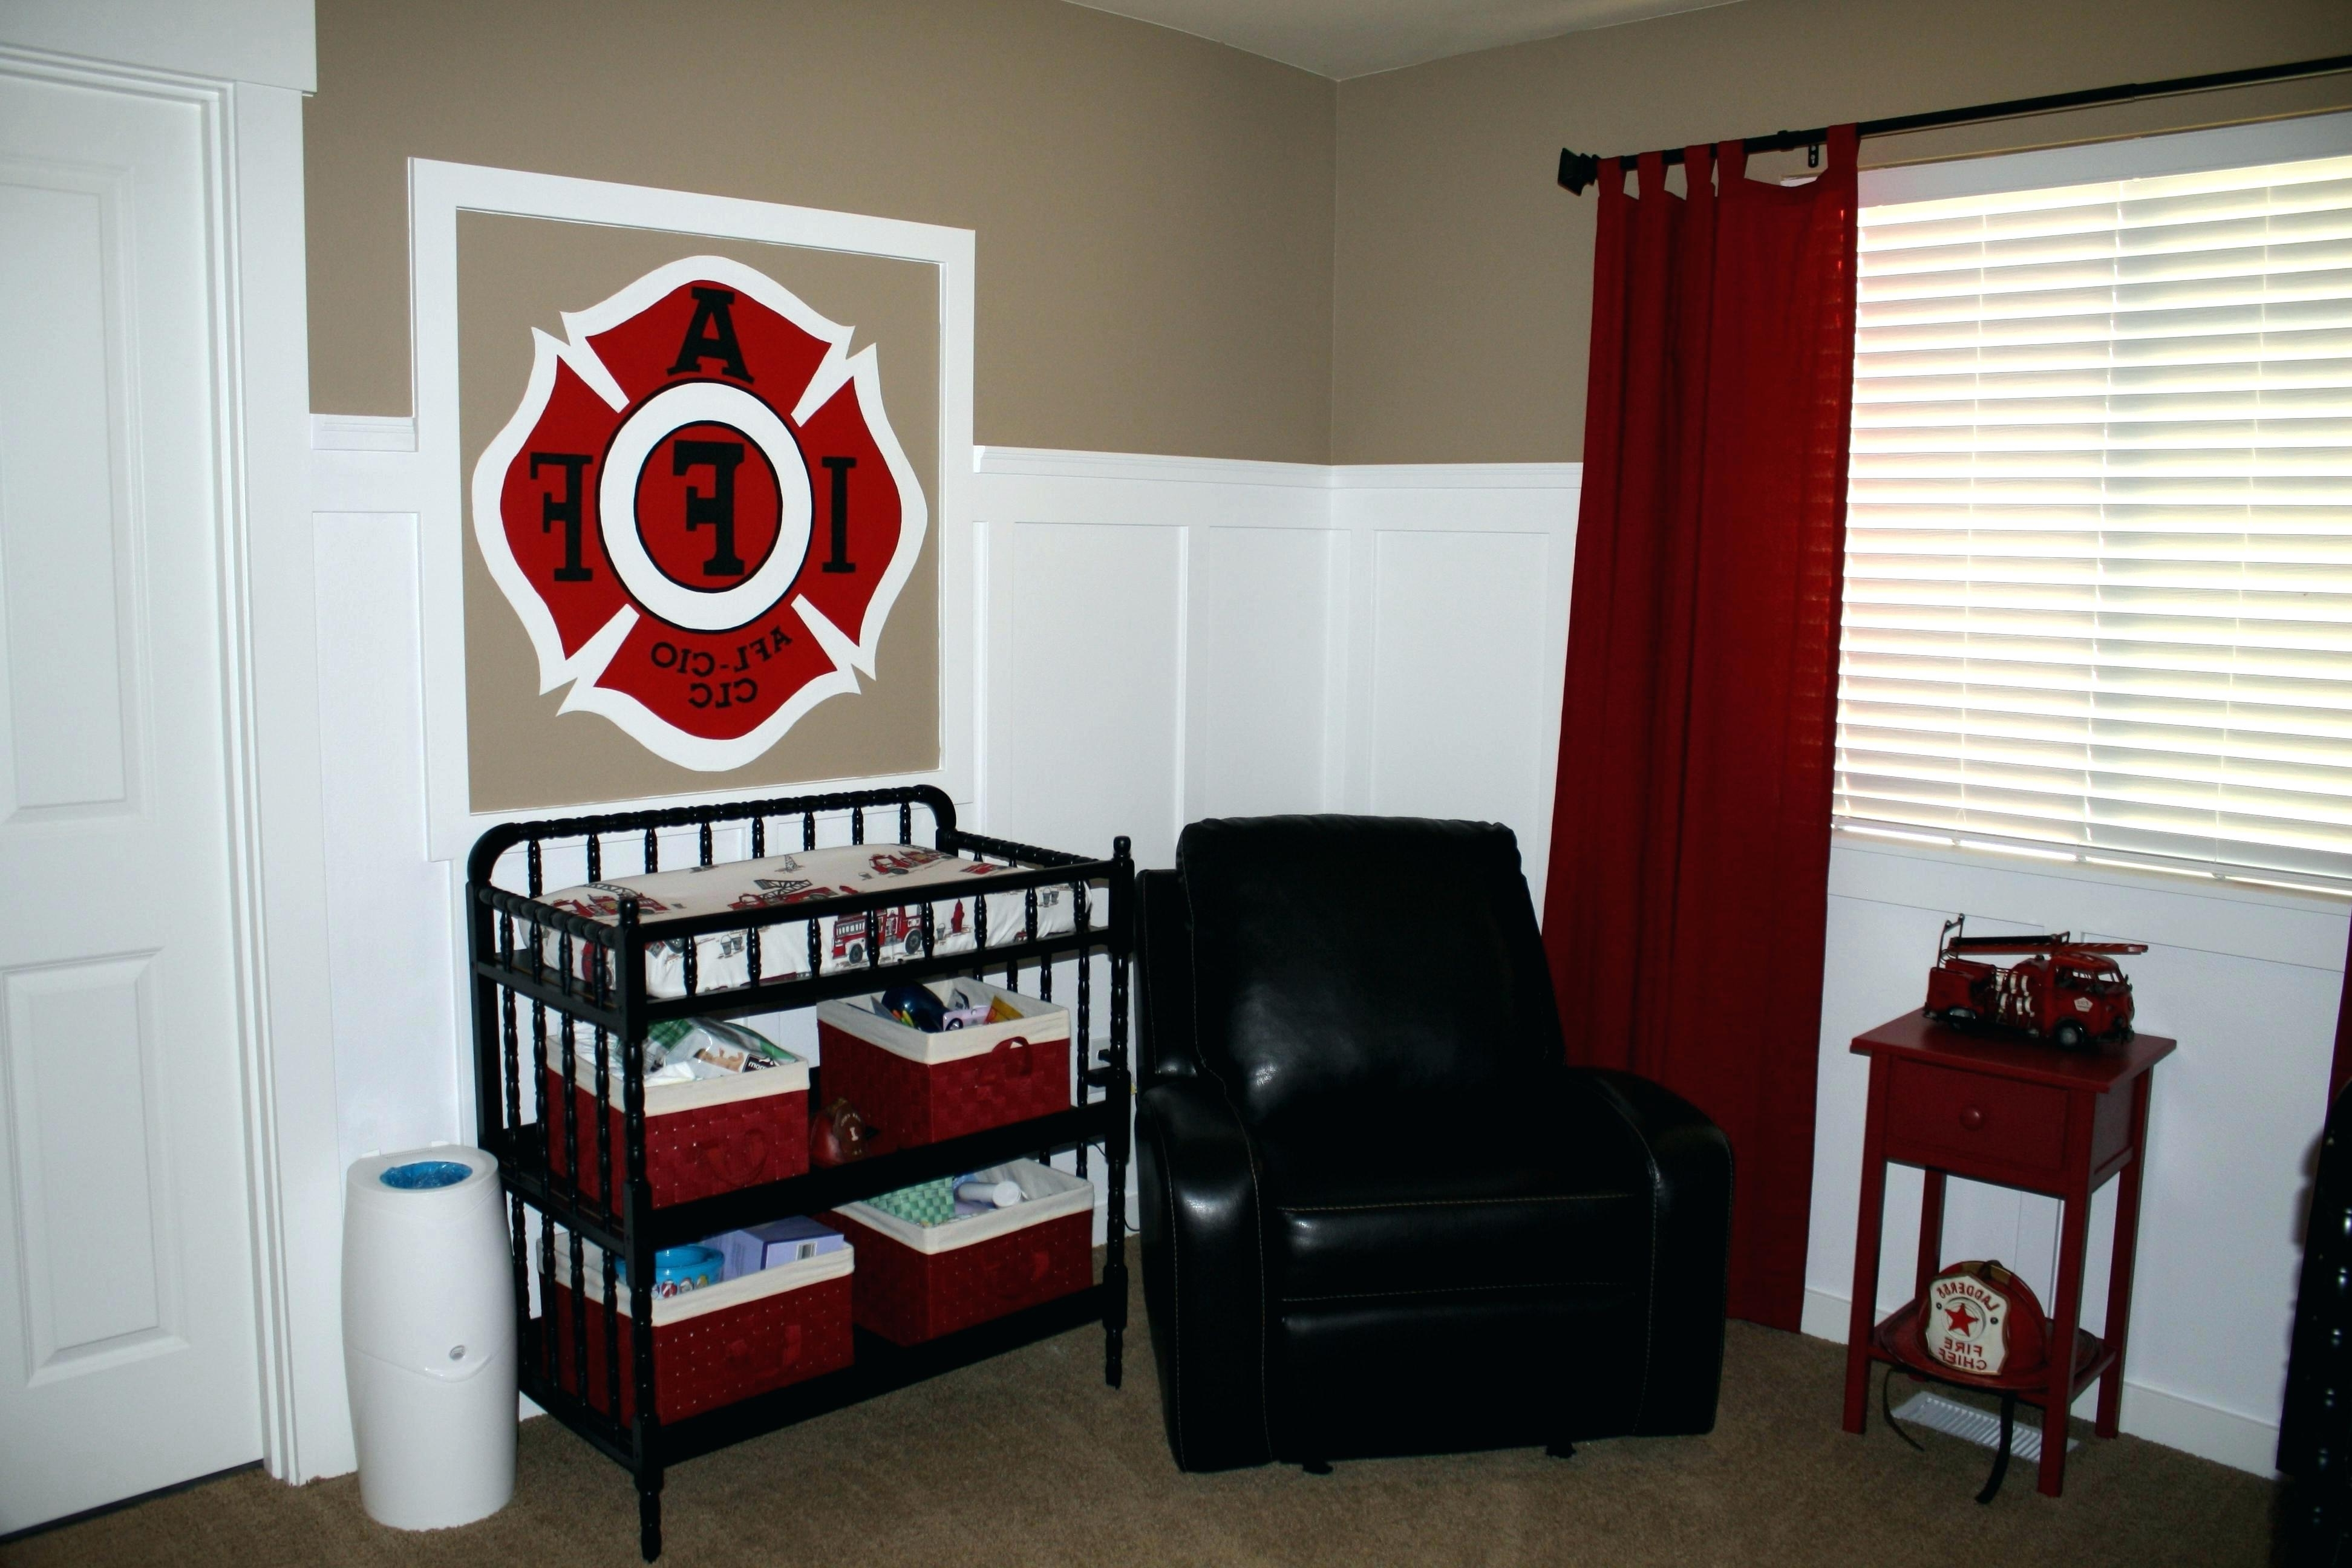 Fireman Wall Decals Articles With Fire Station Wall Decor Tag With Preferred Firefighter Wall Art (View 11 of 20)